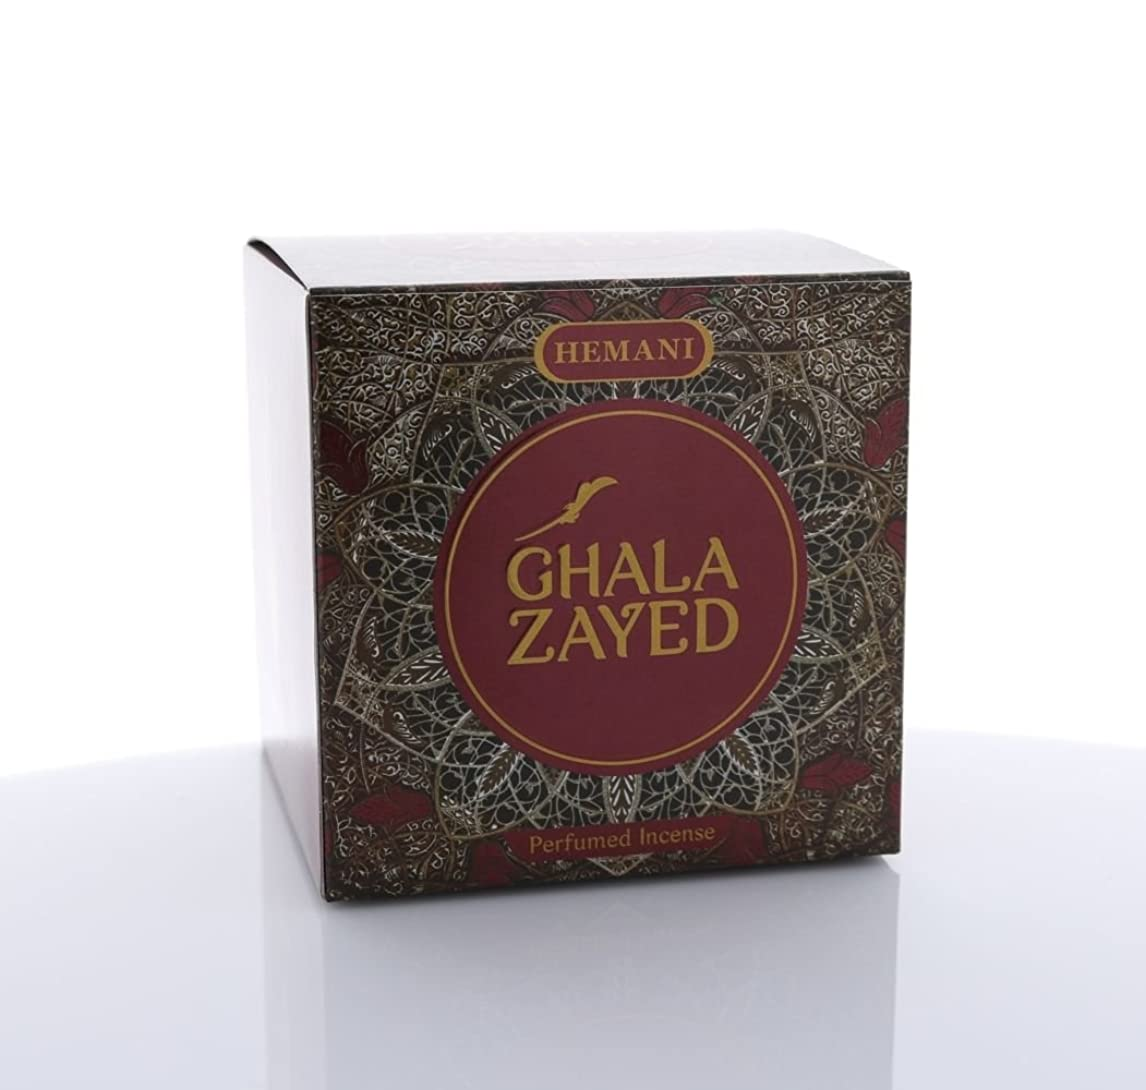 器官コーンウォールスイングHemani Bakhoor Ghala Zayed ( Perfumed Incense ) 90?Gus Seller F / S